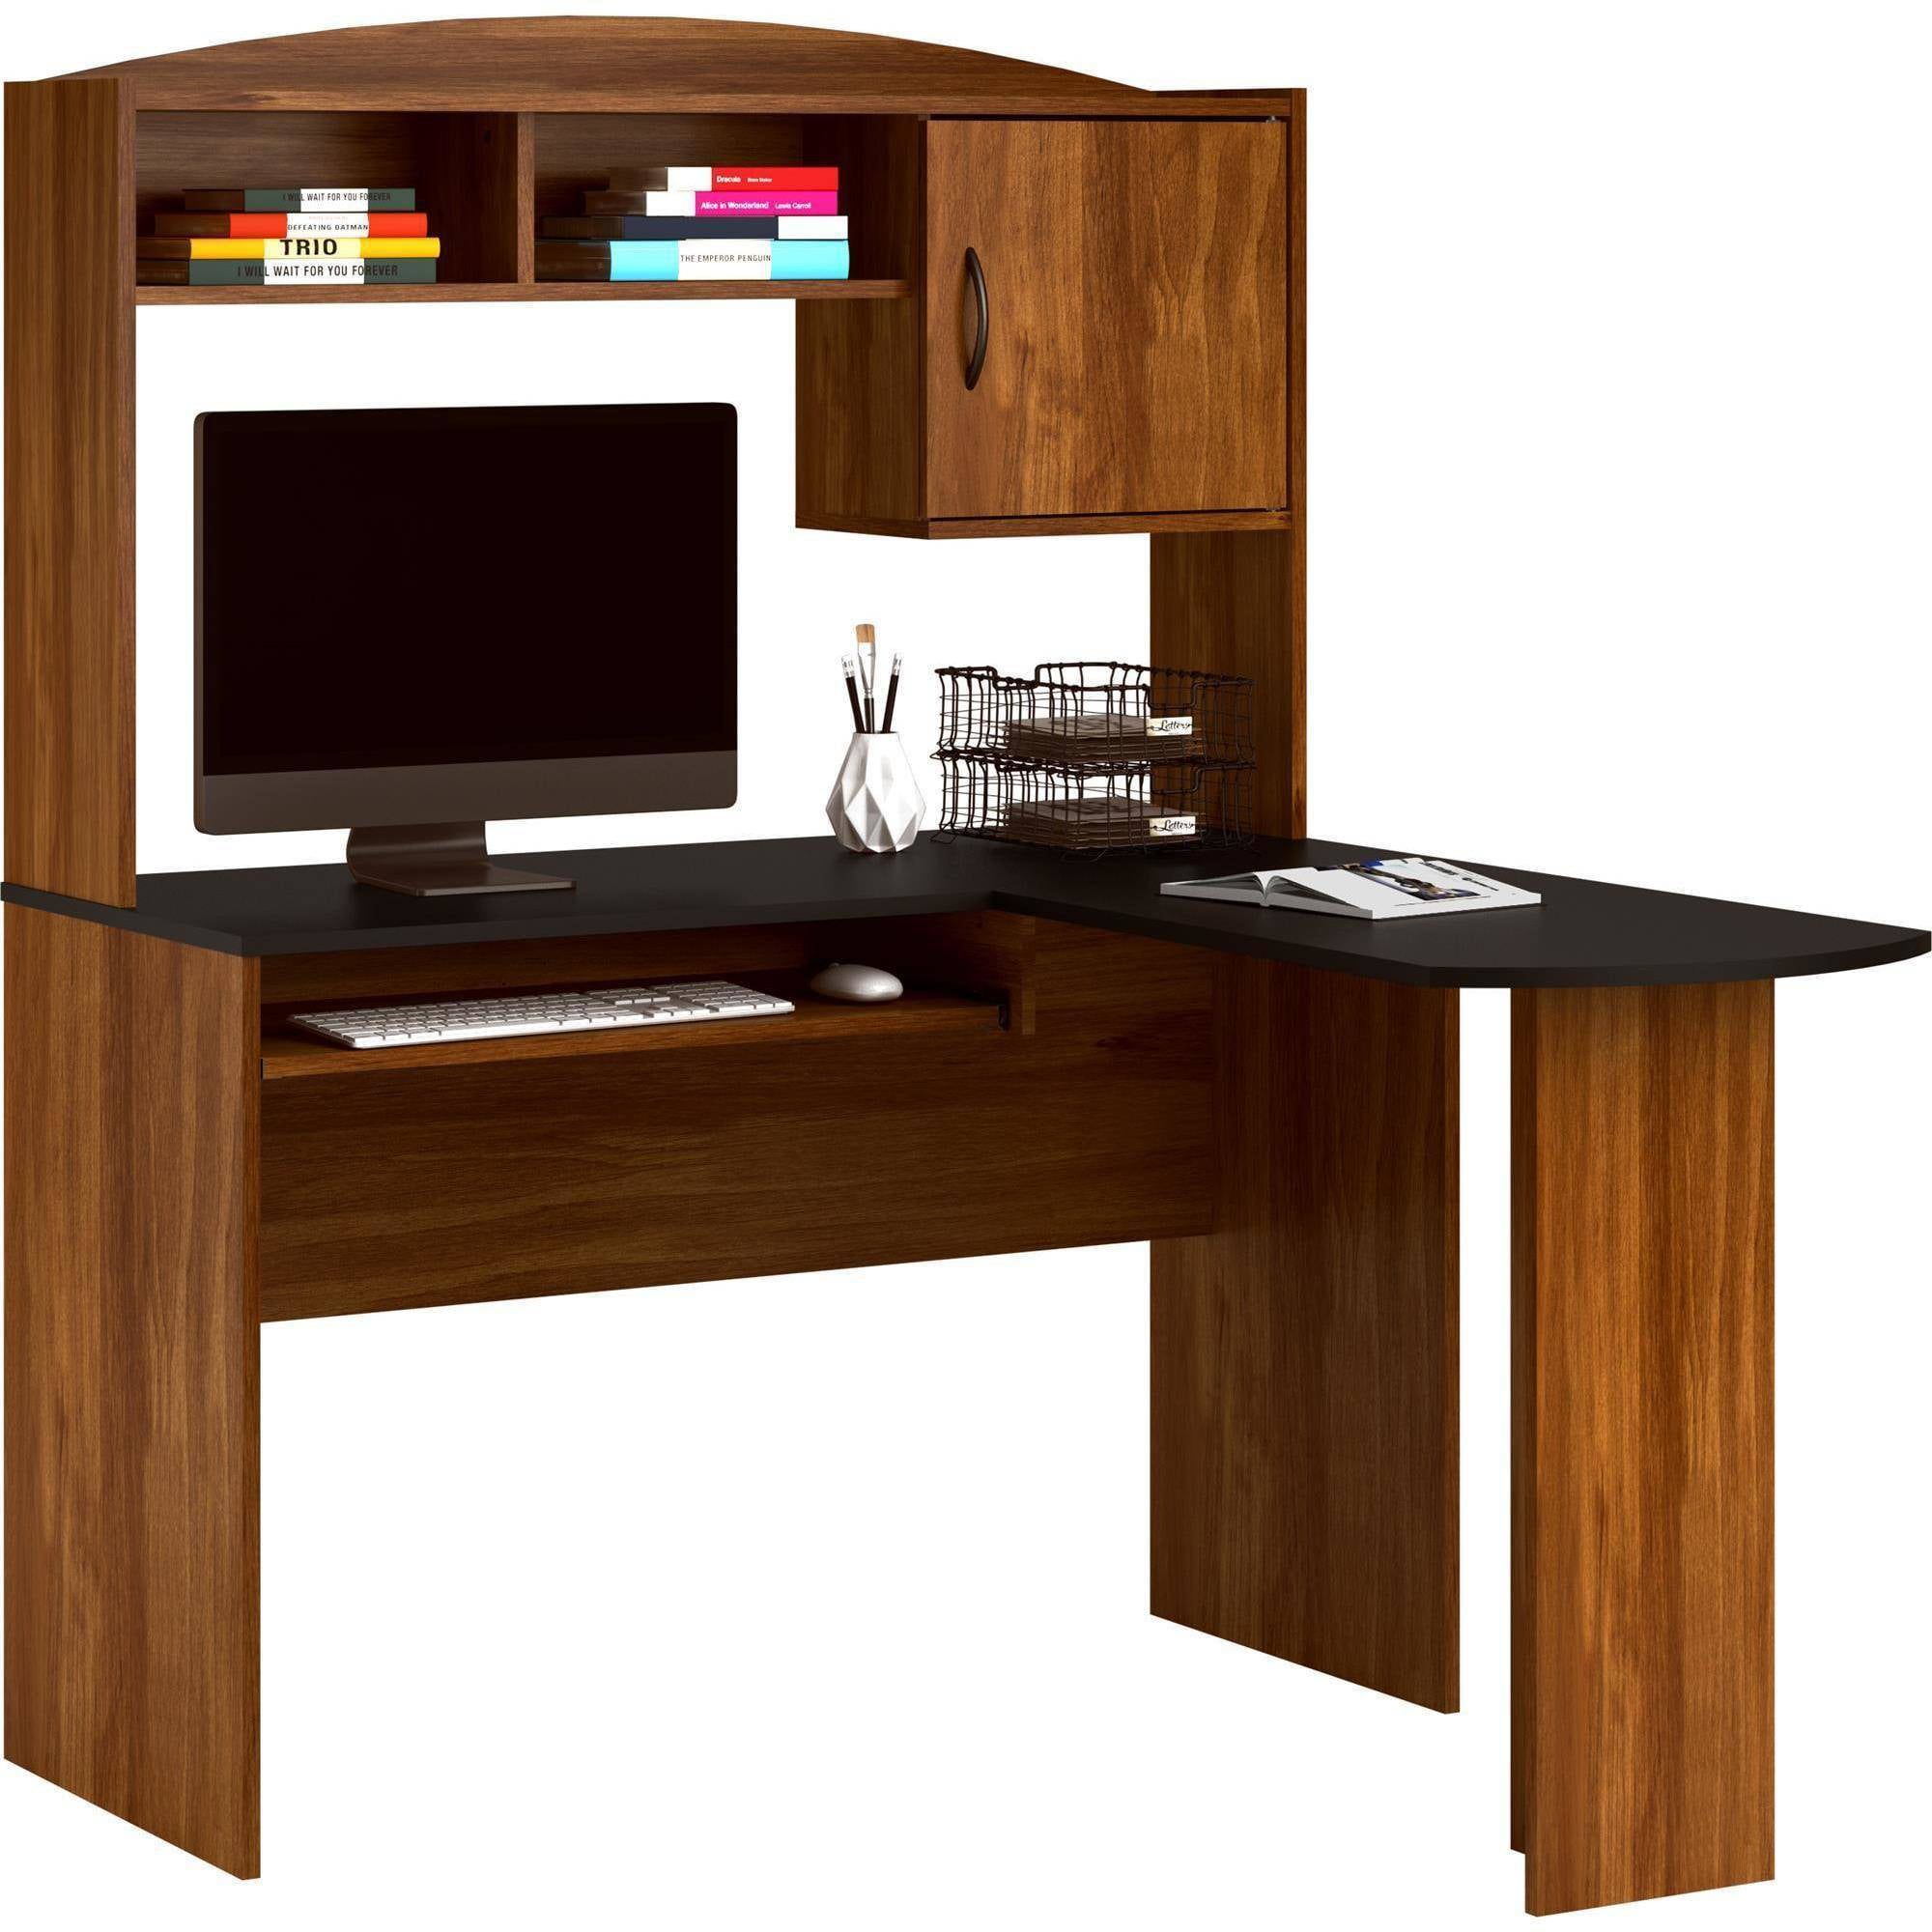 uncle sale shaped cherry white office cullmandc table for home rocket depot with study inch l desk small workstation corner hutch computer